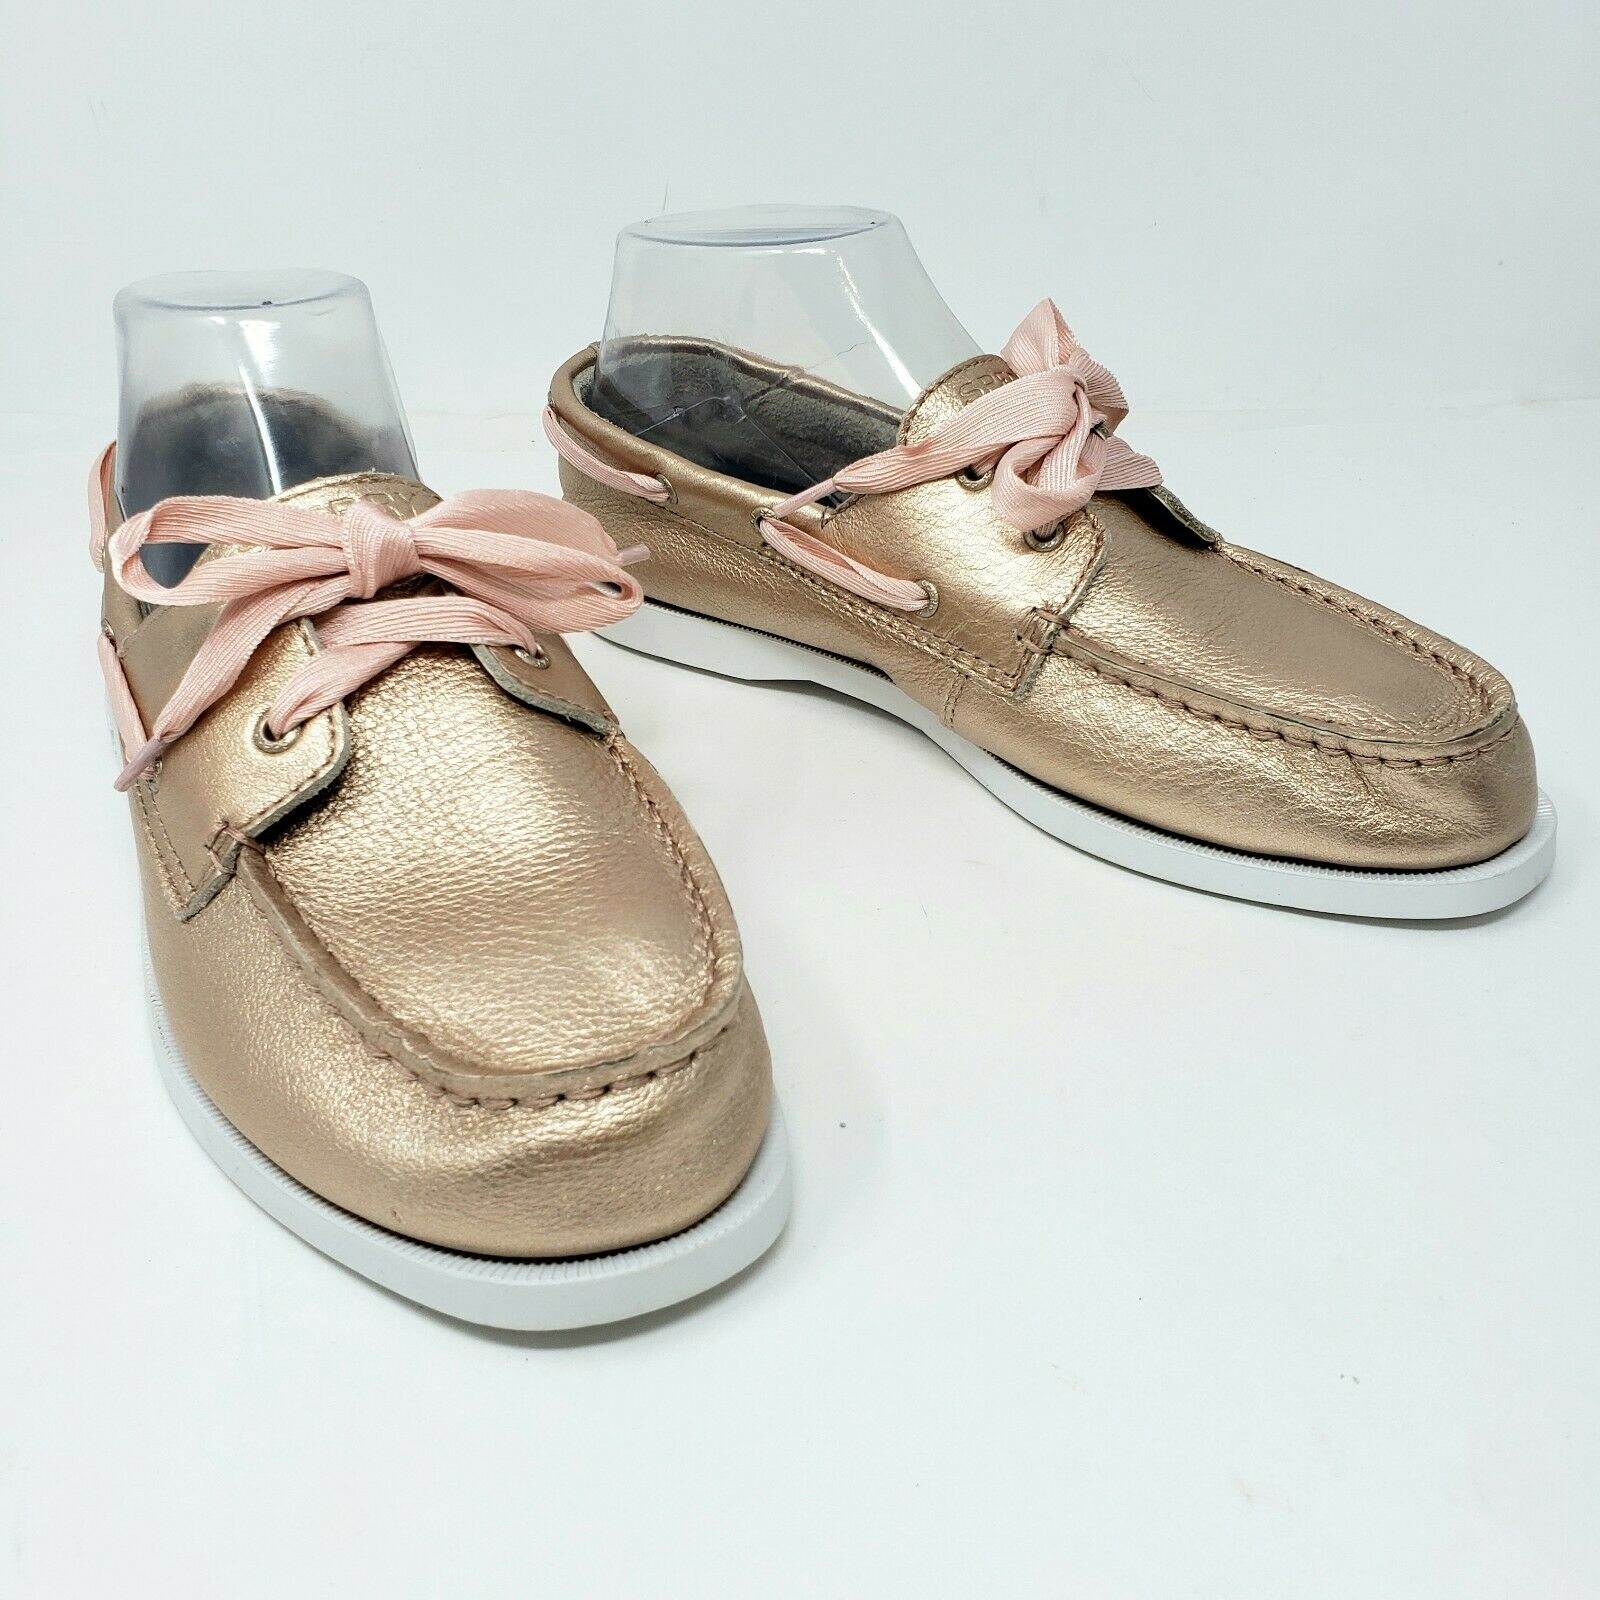 Sperry Top Sider Womens 6 Rose Gold Metallic Leather Laced Boat Shoe Loafers New